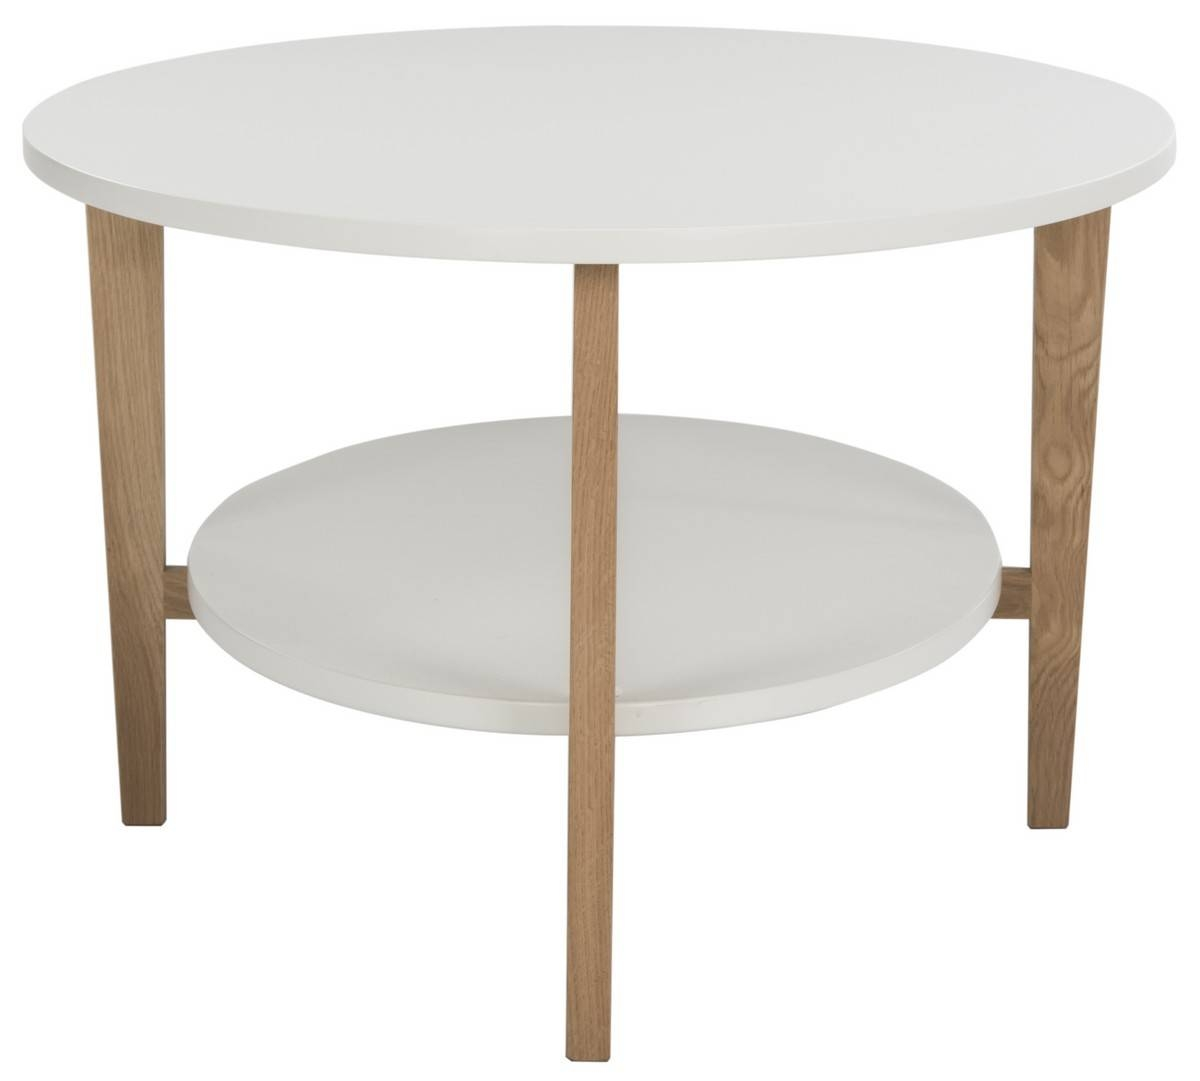 Fox8201A Coffee Tables - Furnituresafavieh intended for White Oval Coffee Tables (Image 11 of 30)